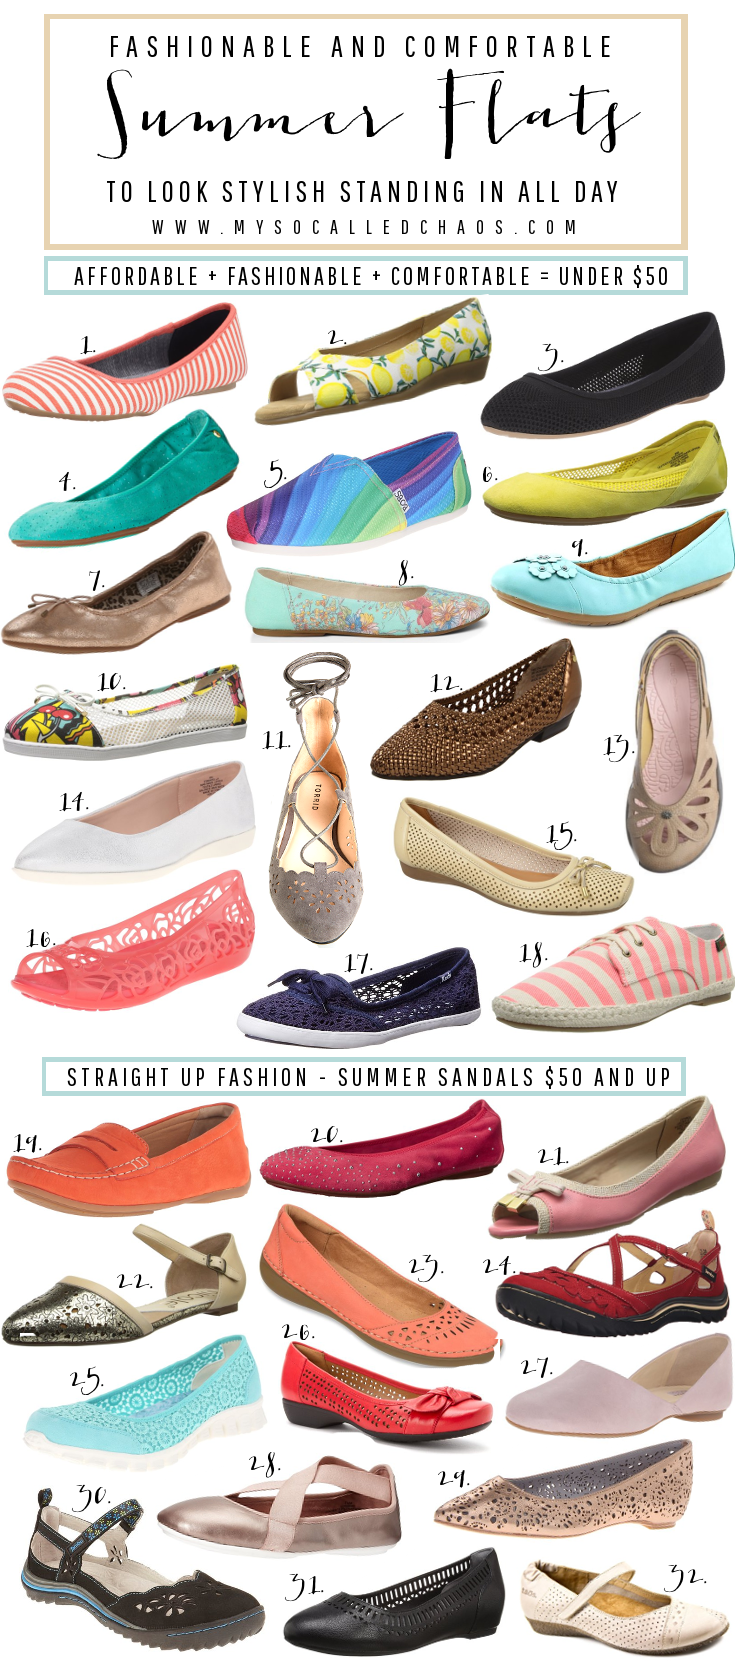 Fashionable and Comfortable Summer Flats You Can Stand In All Day